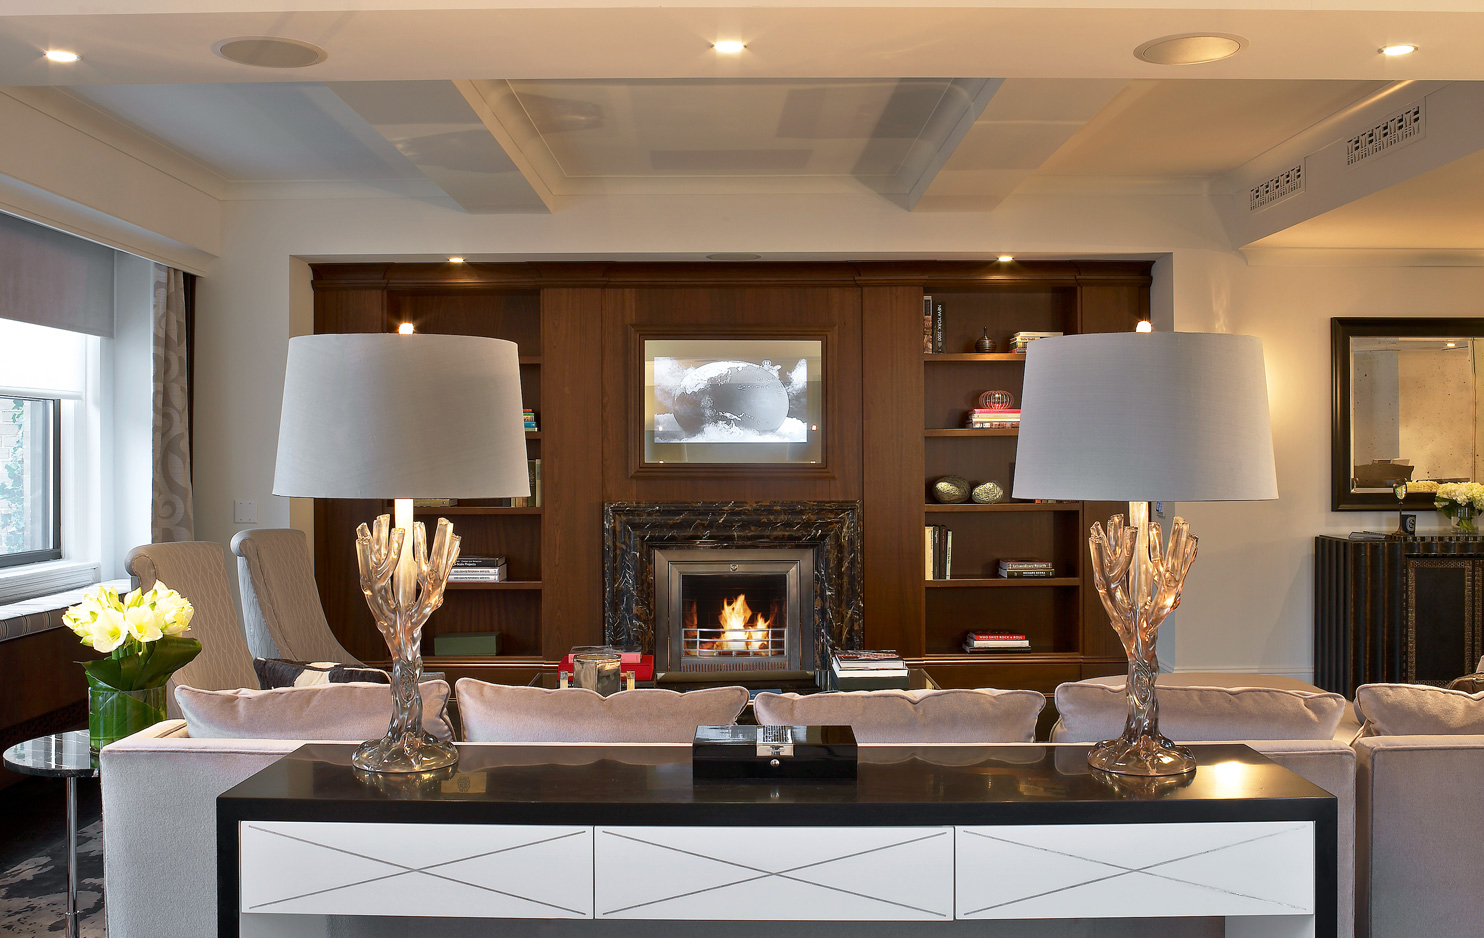 "Designer: Rottet Studio | Architect: Stonehill & Taylor Architects | Ventless Fireplace: Custom unit - Stainless Steel with Edwardian grate - 38"" W x 37"" H x 11.5"" D"